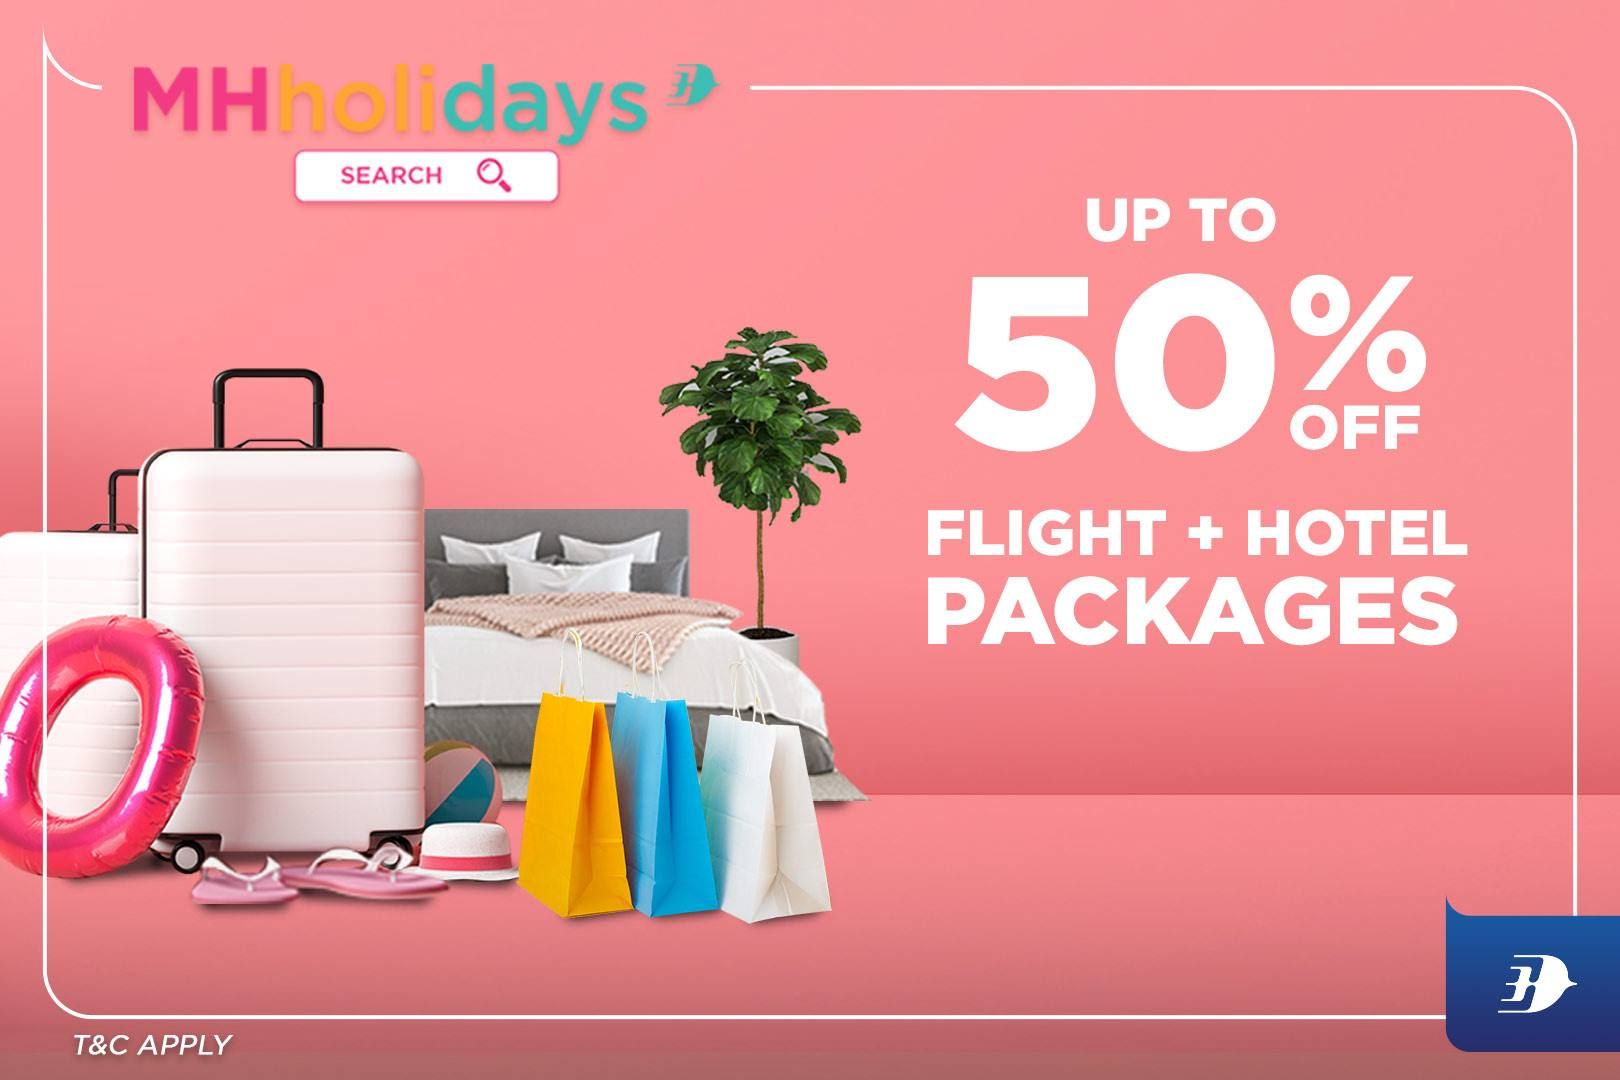 Up to 50% off flight + hotel packages